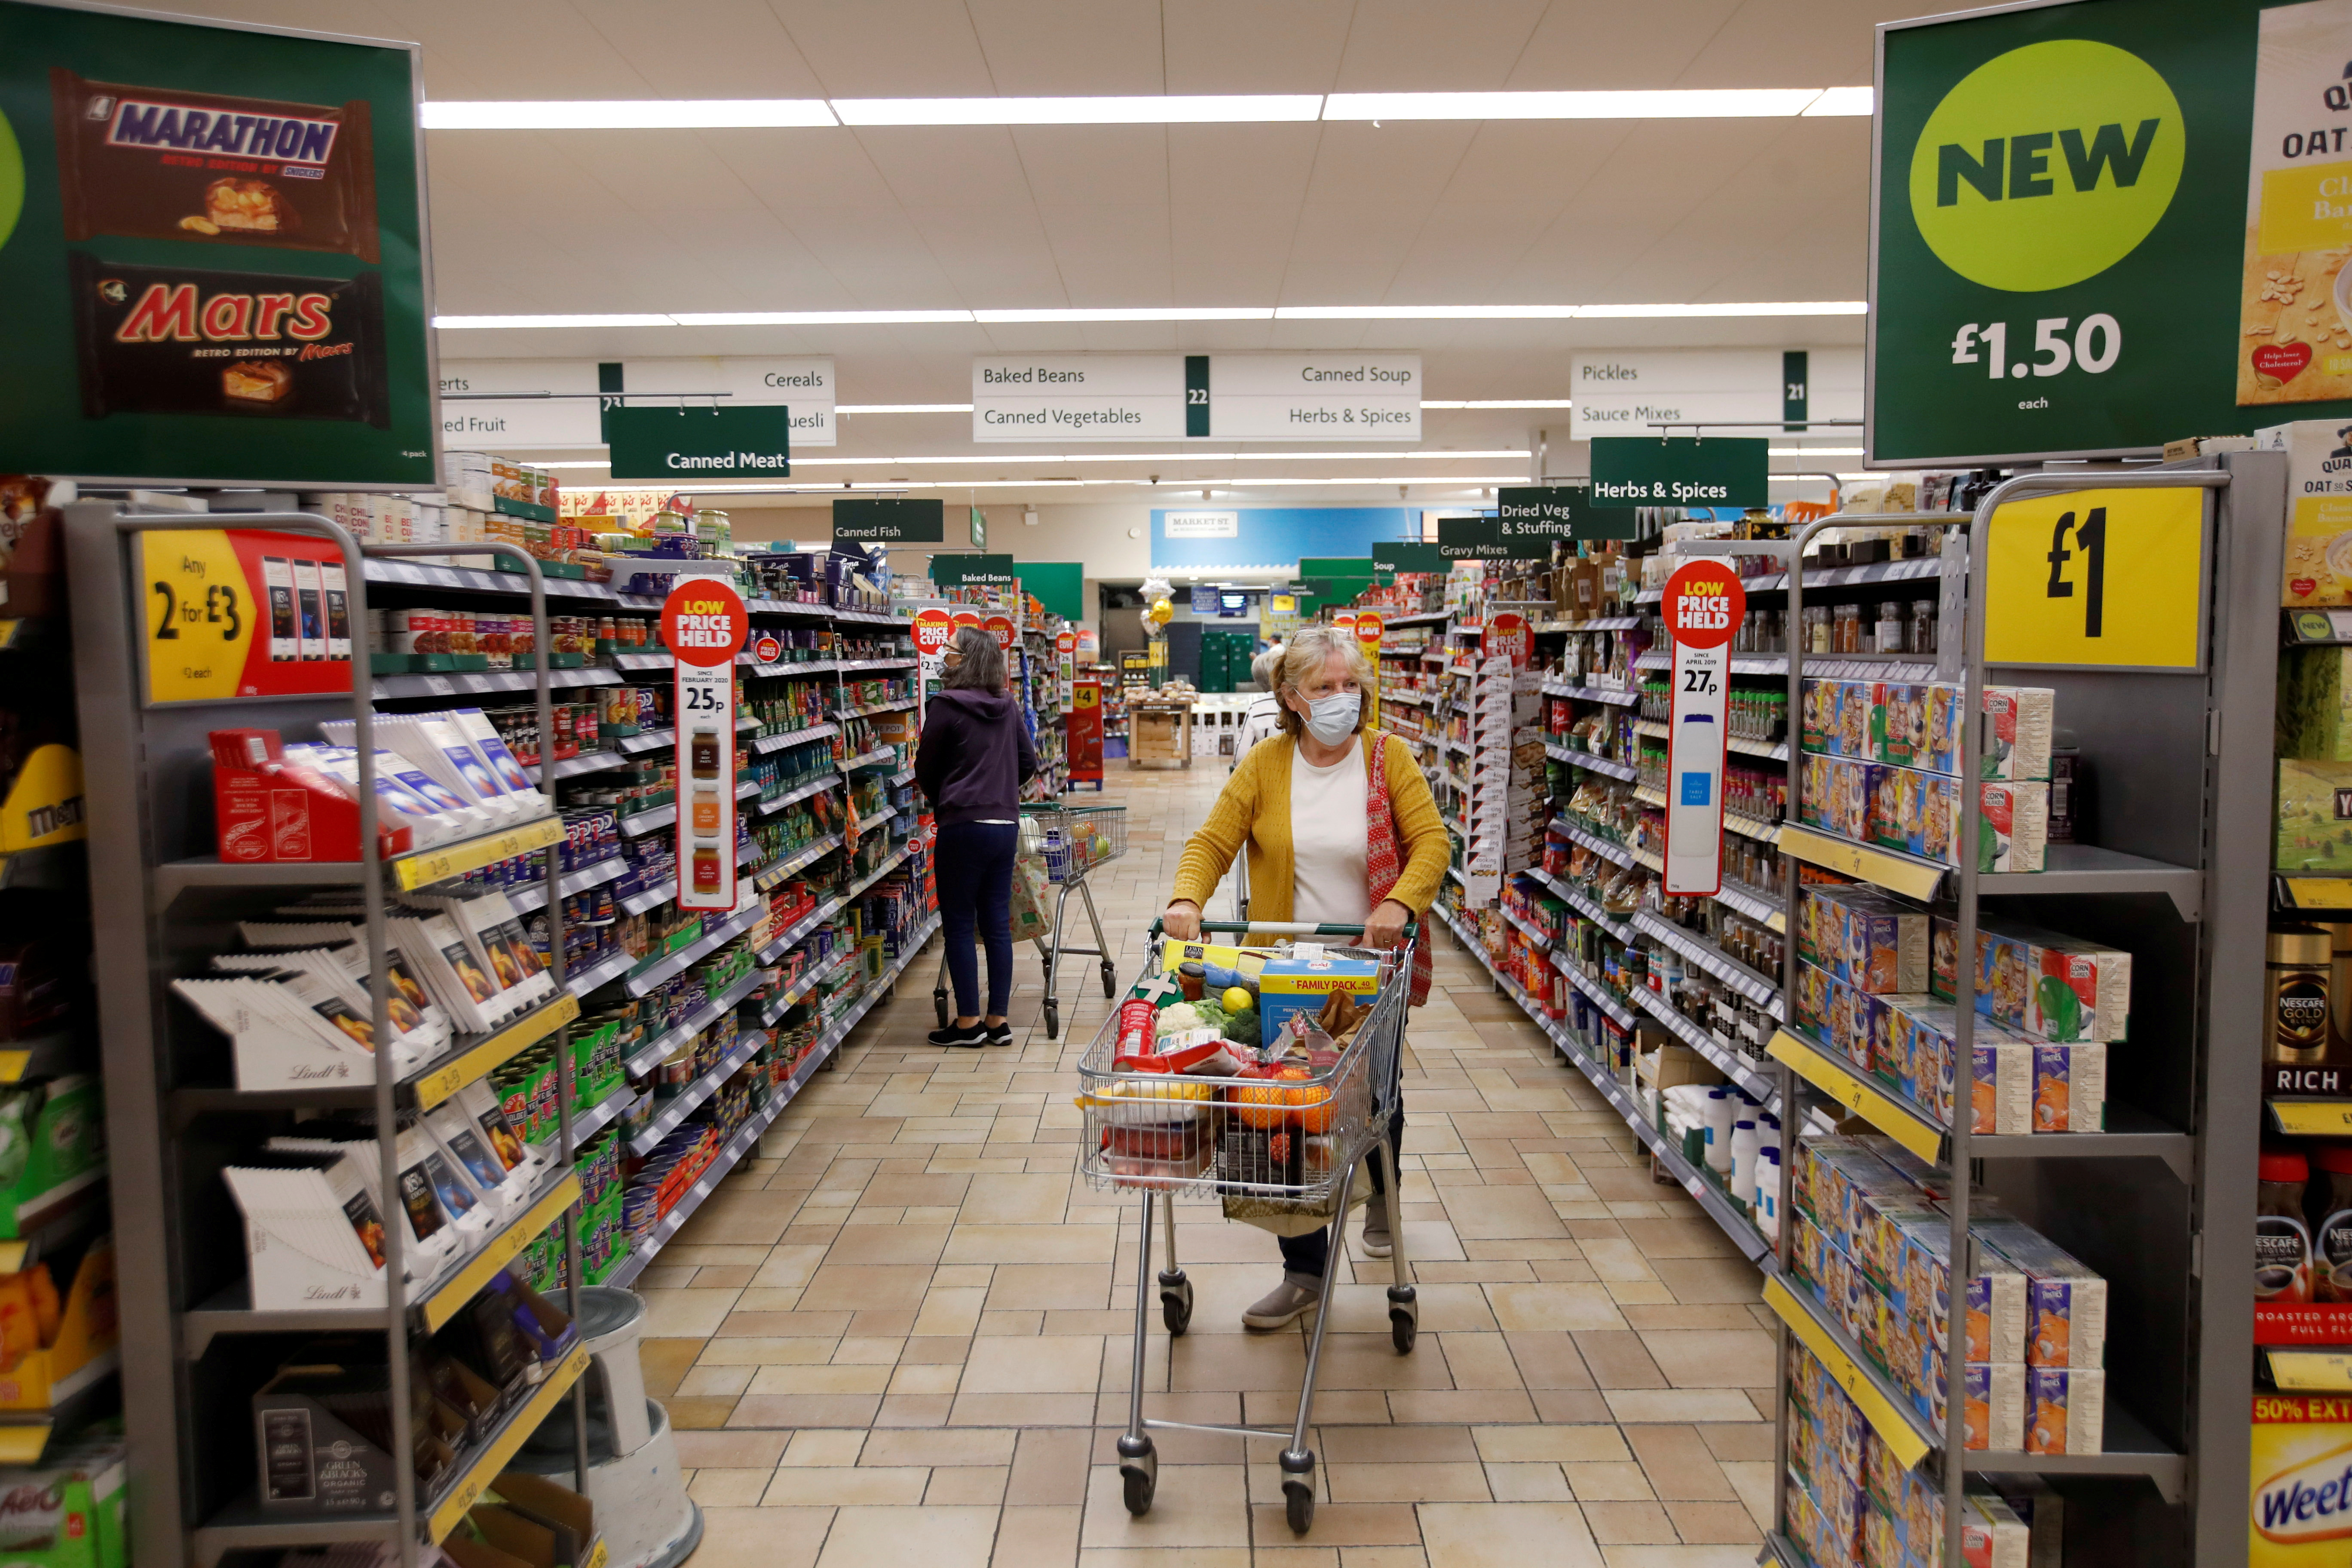 A customer wearing a protective face mask shops at a Morrisons store in St Albans, Britain, September 10, 2020.  REUTERS/Peter Cziborra/File Photo